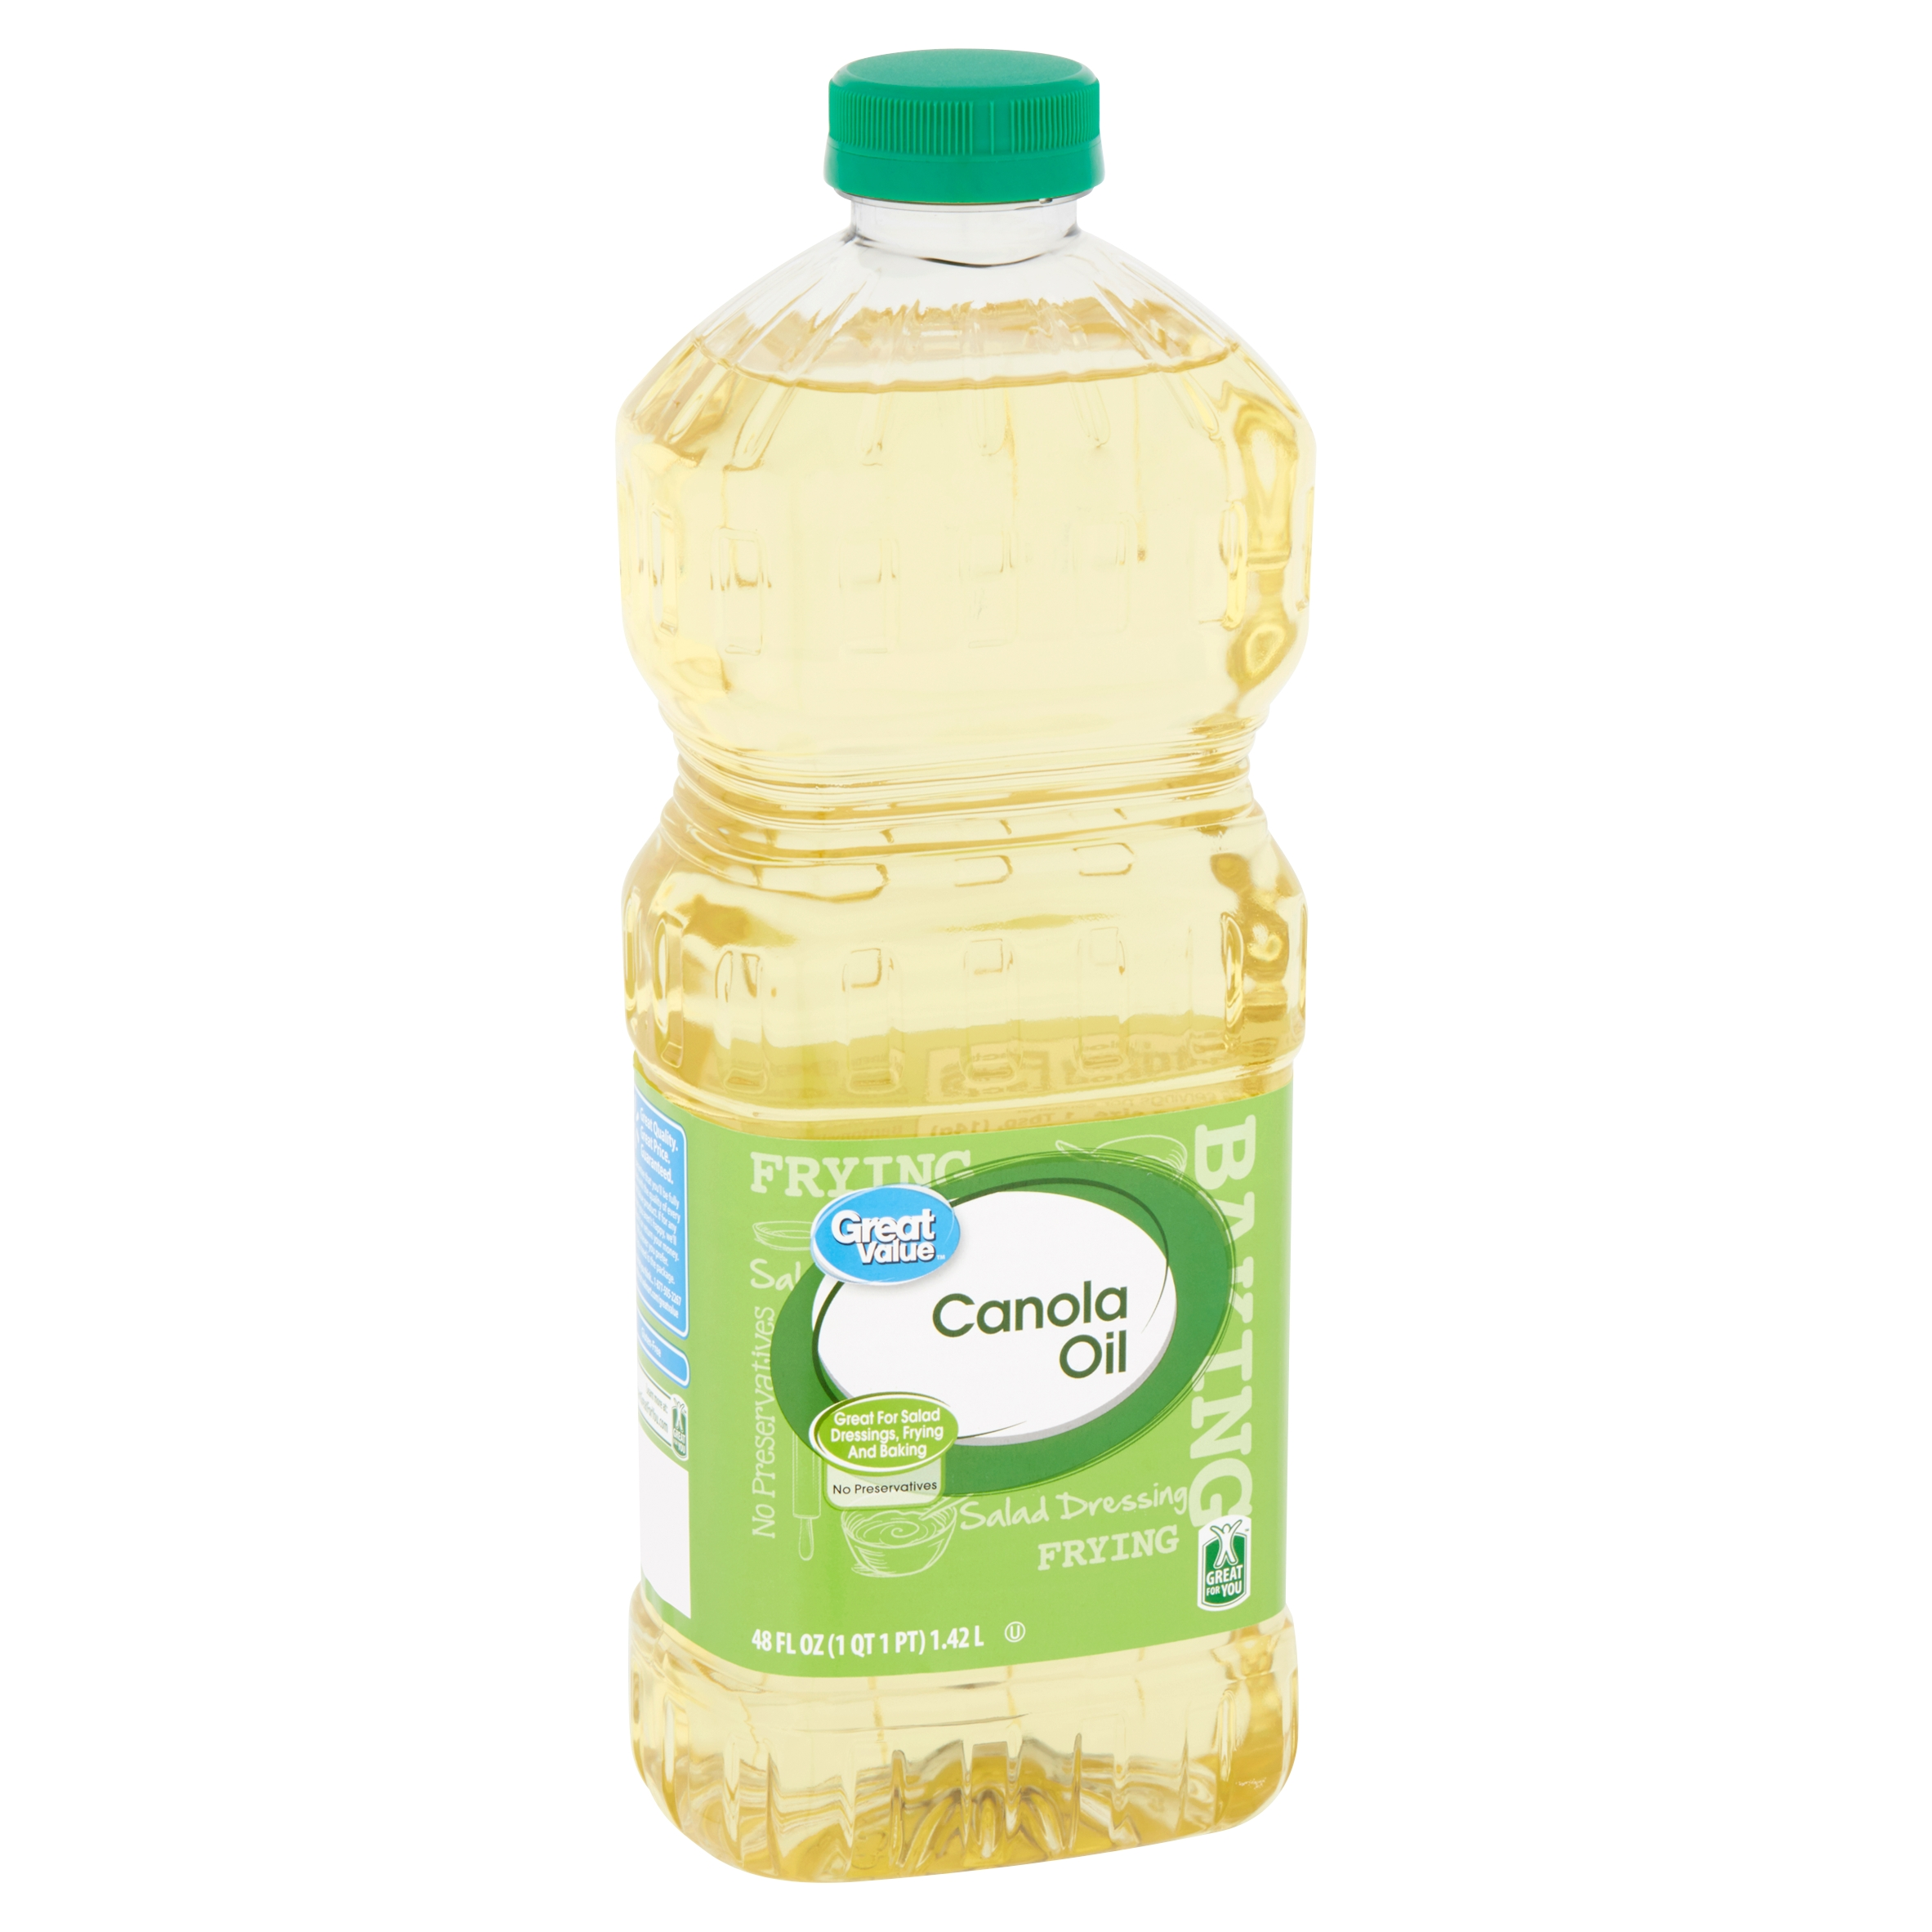 Great Value Canola Oil, 48 fl oz